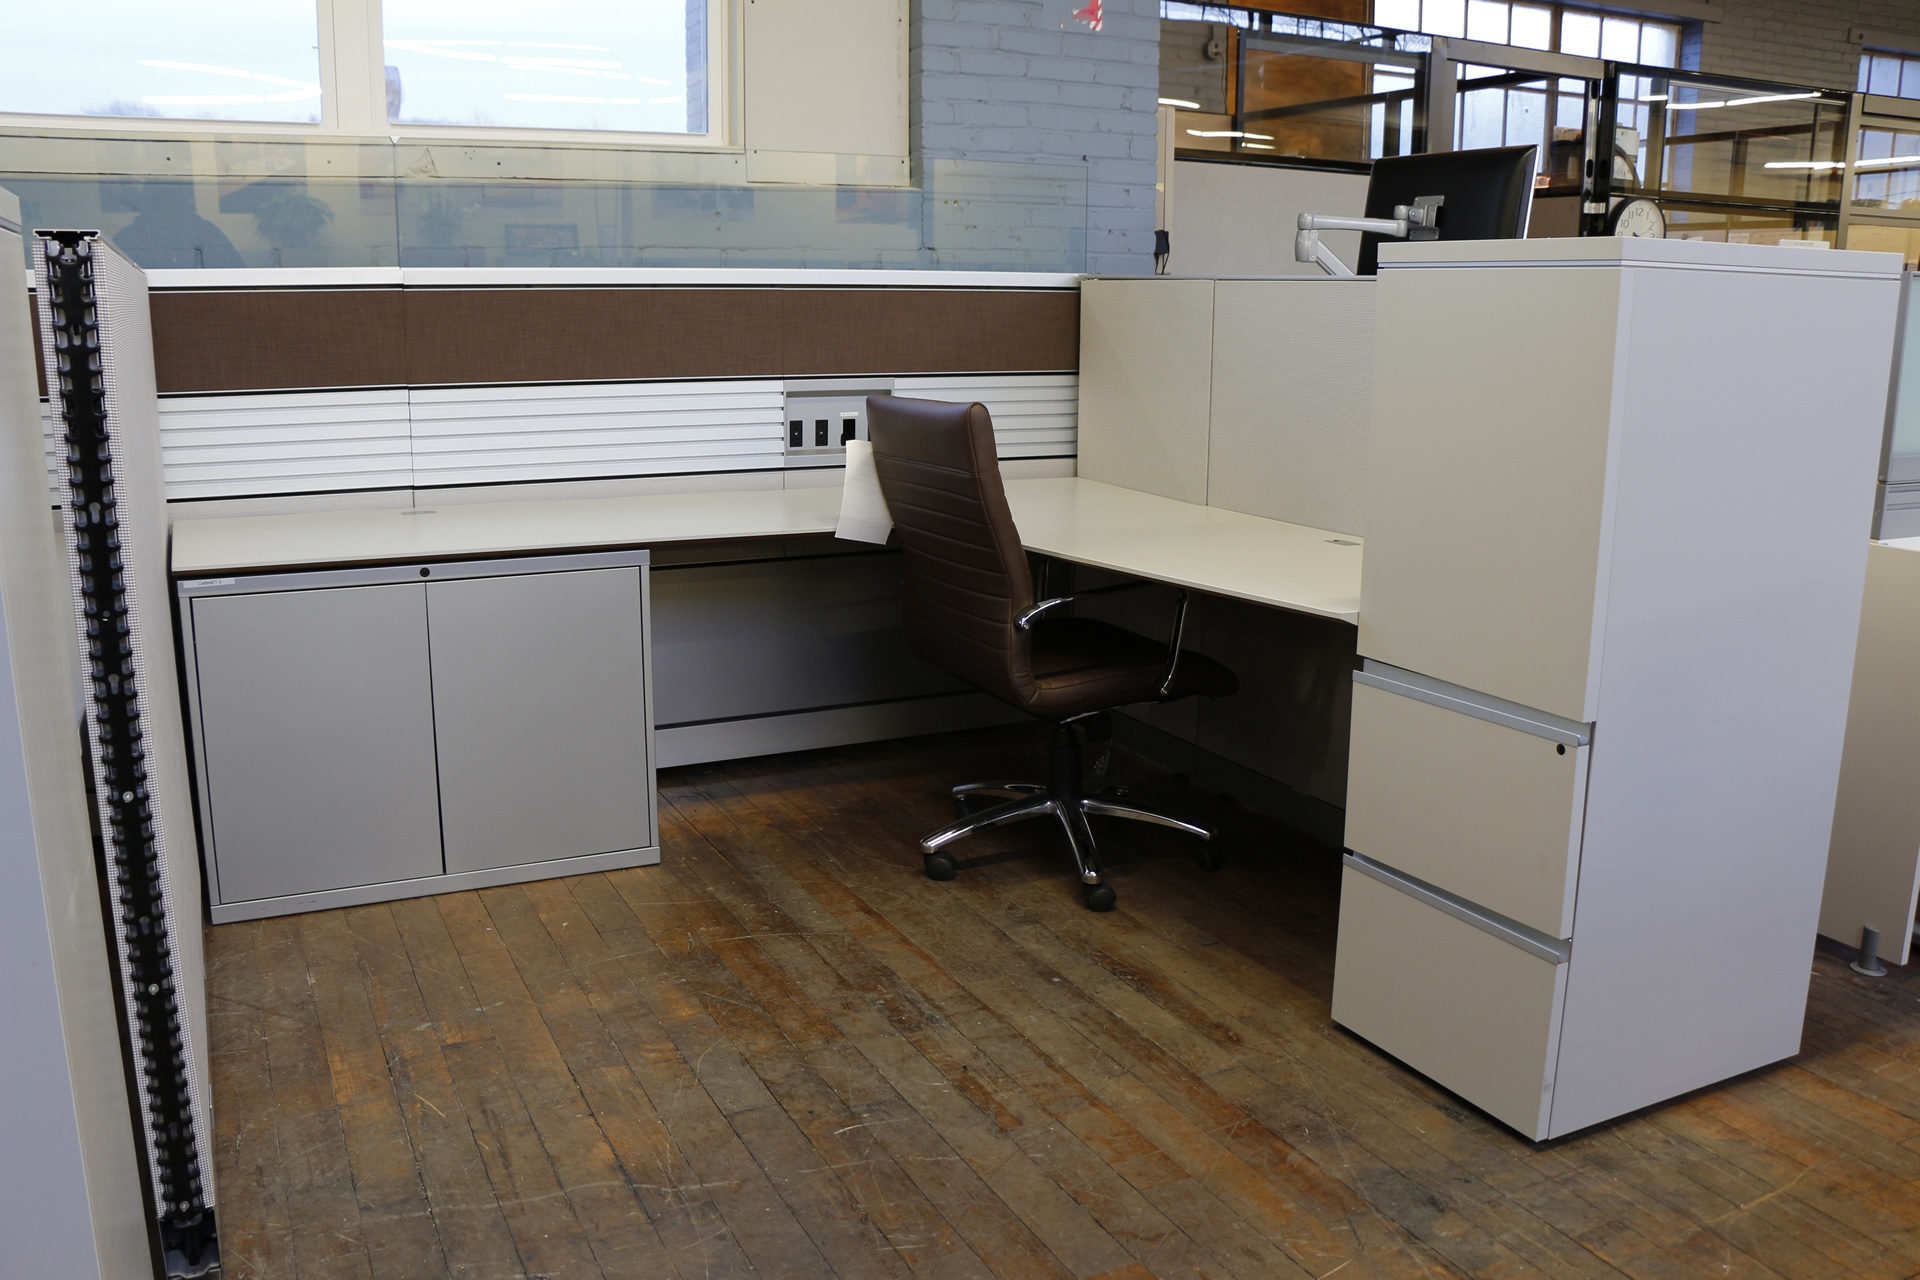 peartreeofficefurniture_peartreeofficefurniture_mg_4955.jpg